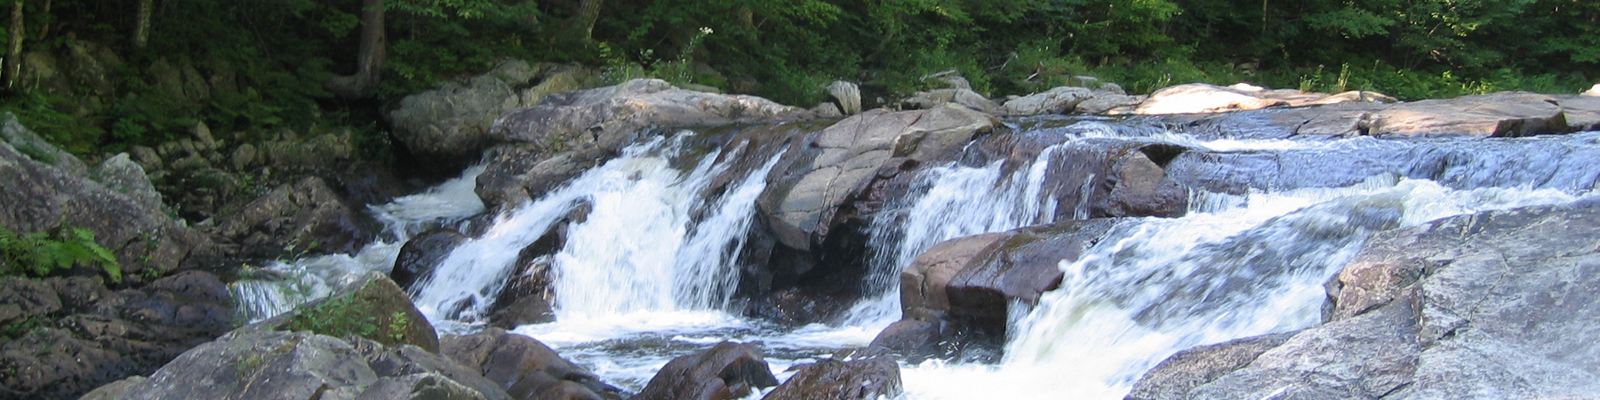 Waterfall along West bracnh of the Sacandaga River